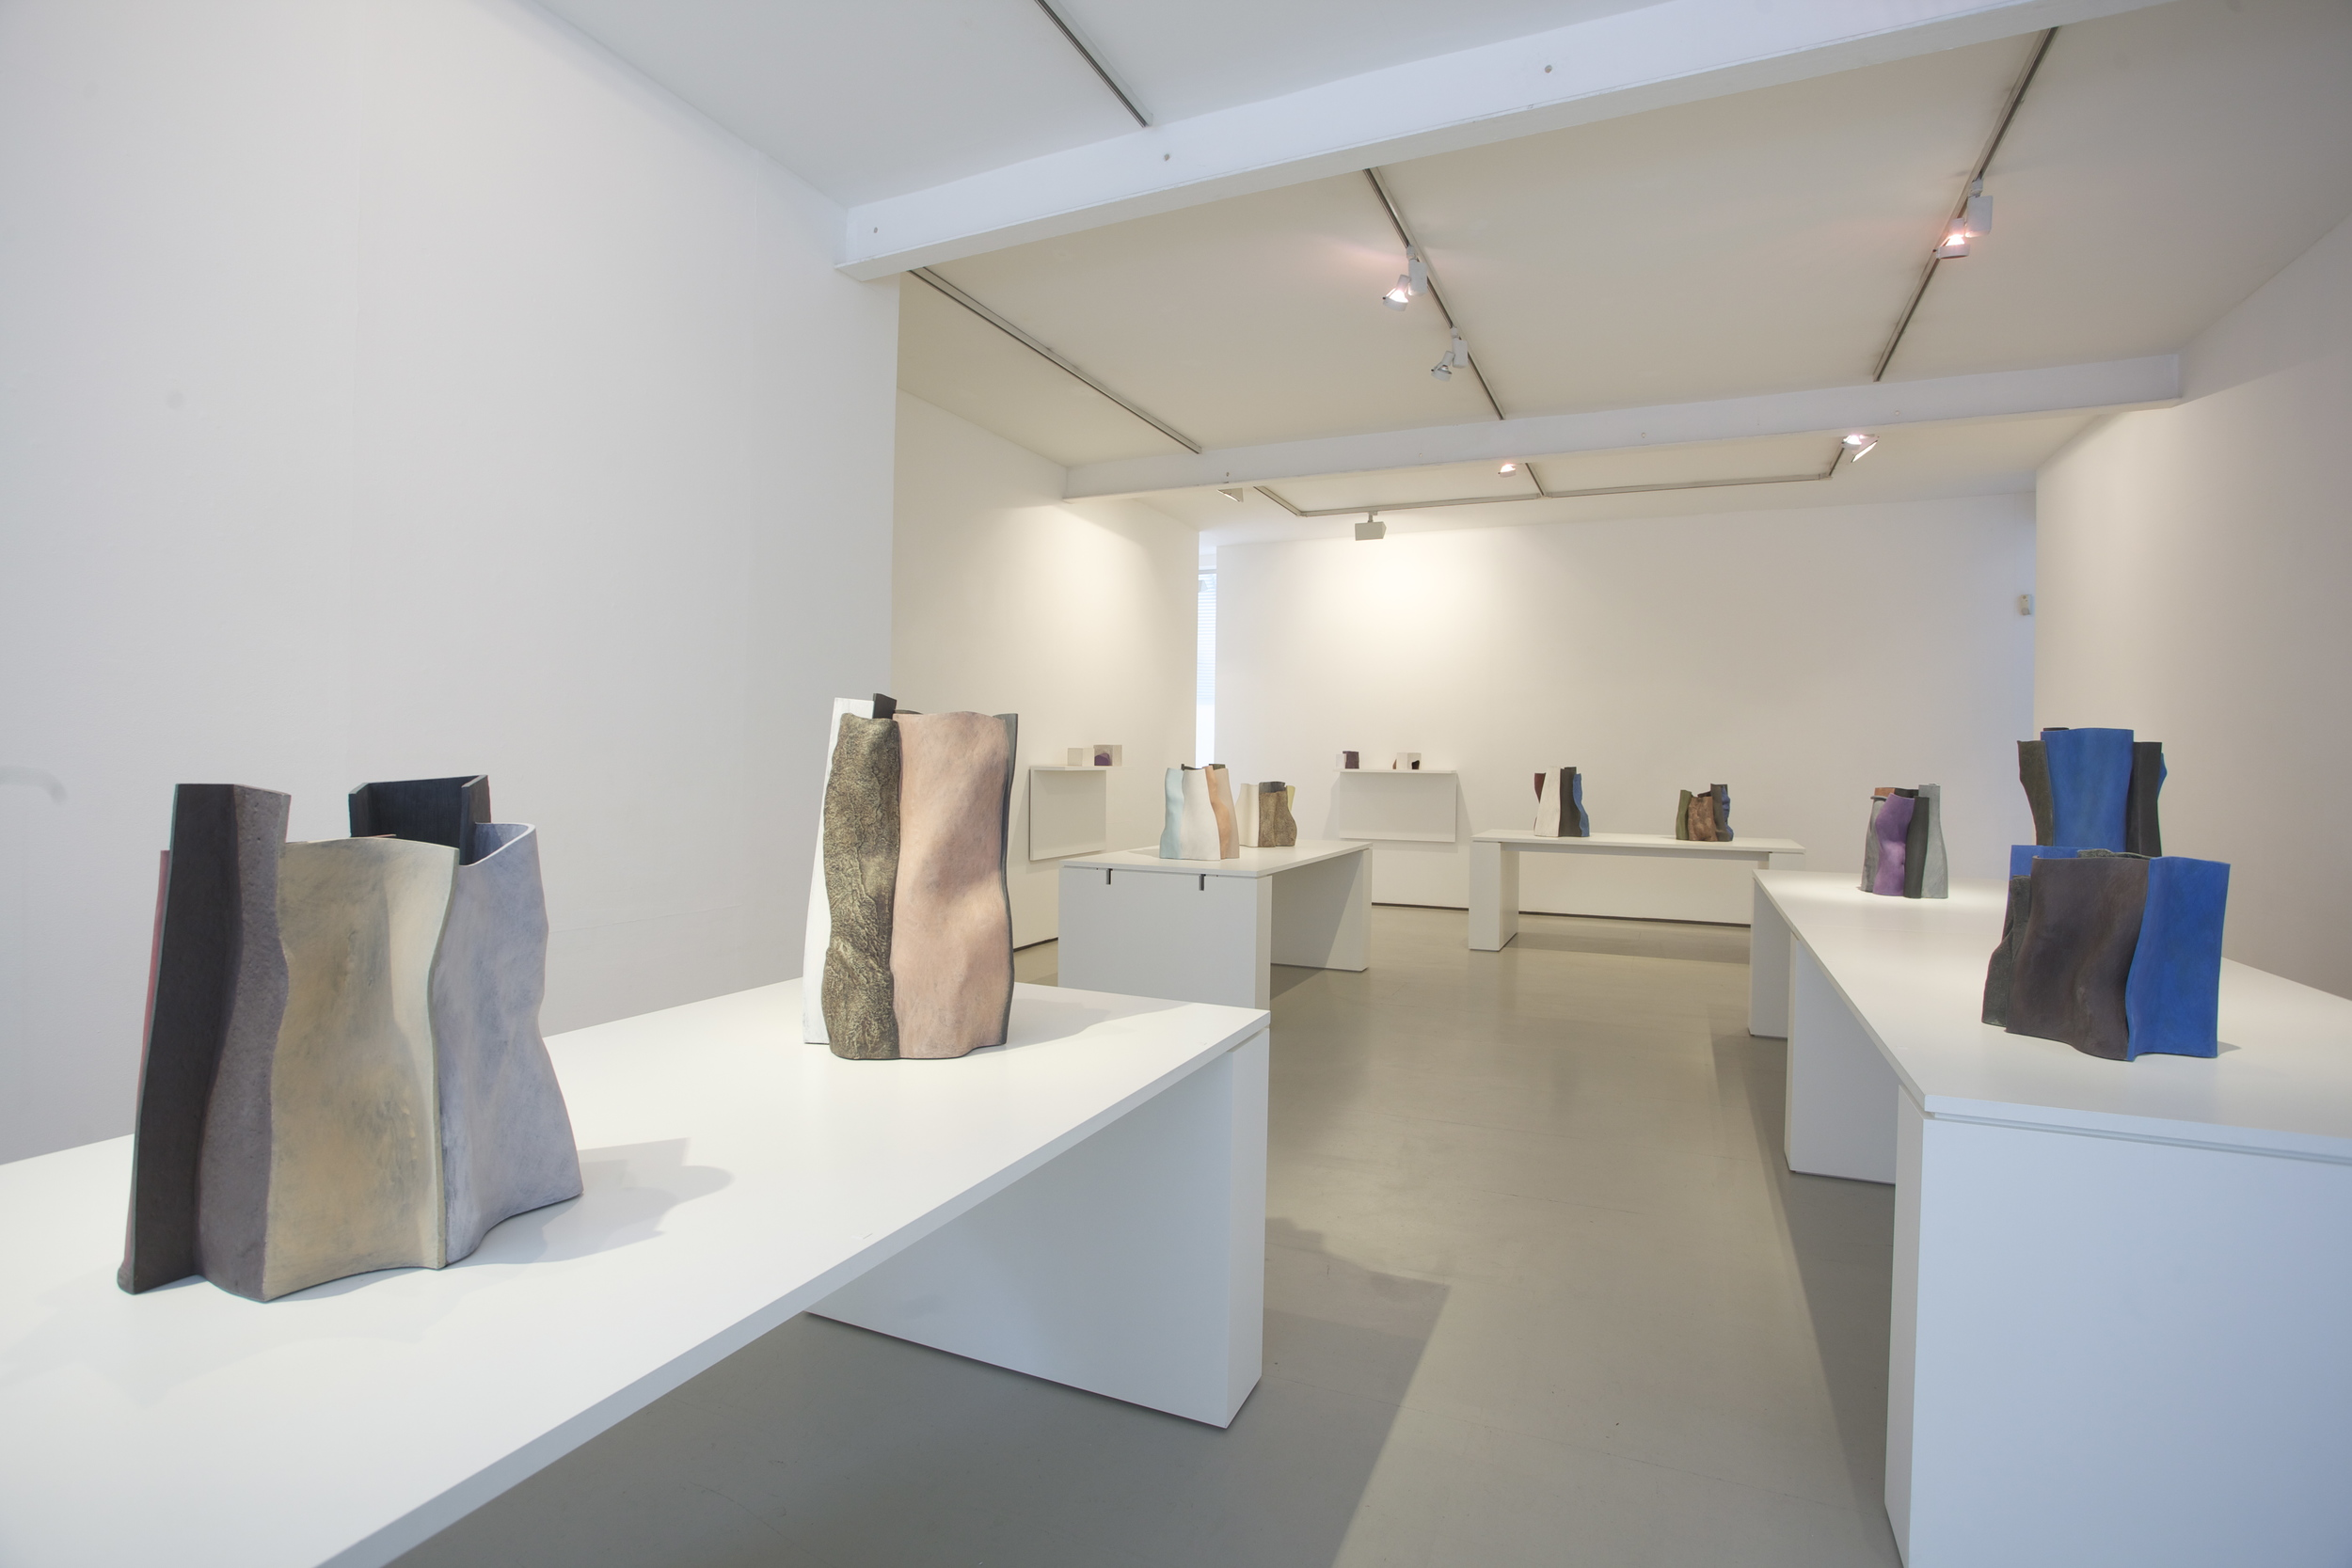 'The shape of things' solo exhibition, Marsden Woo 2012, photo © Phil Sayer